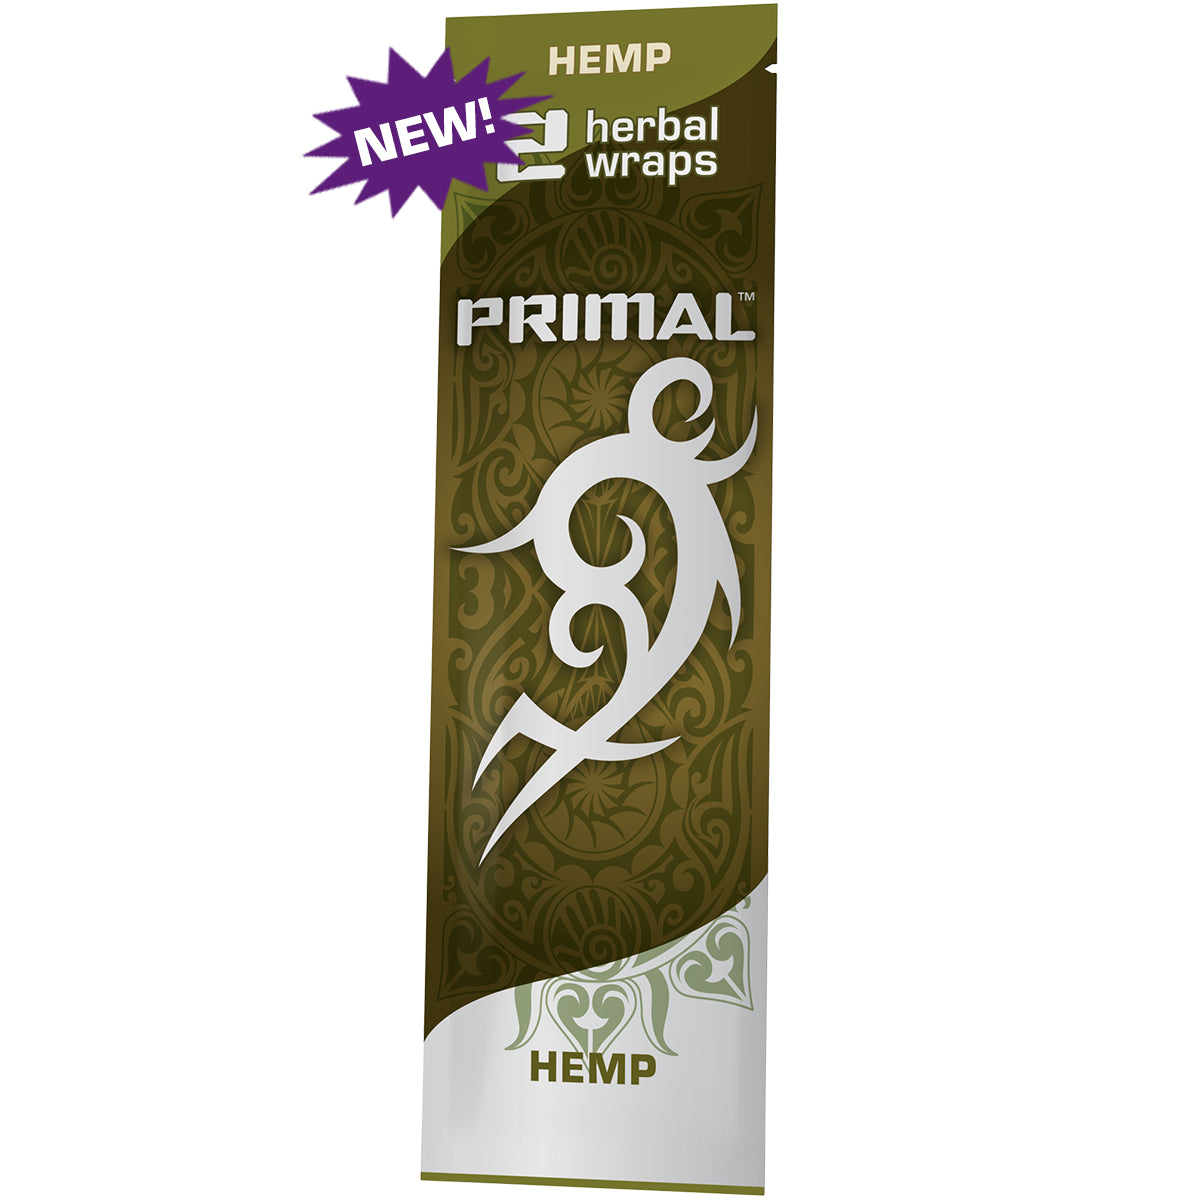 Primal - Hemp Herbal Wraps (2 Pack)